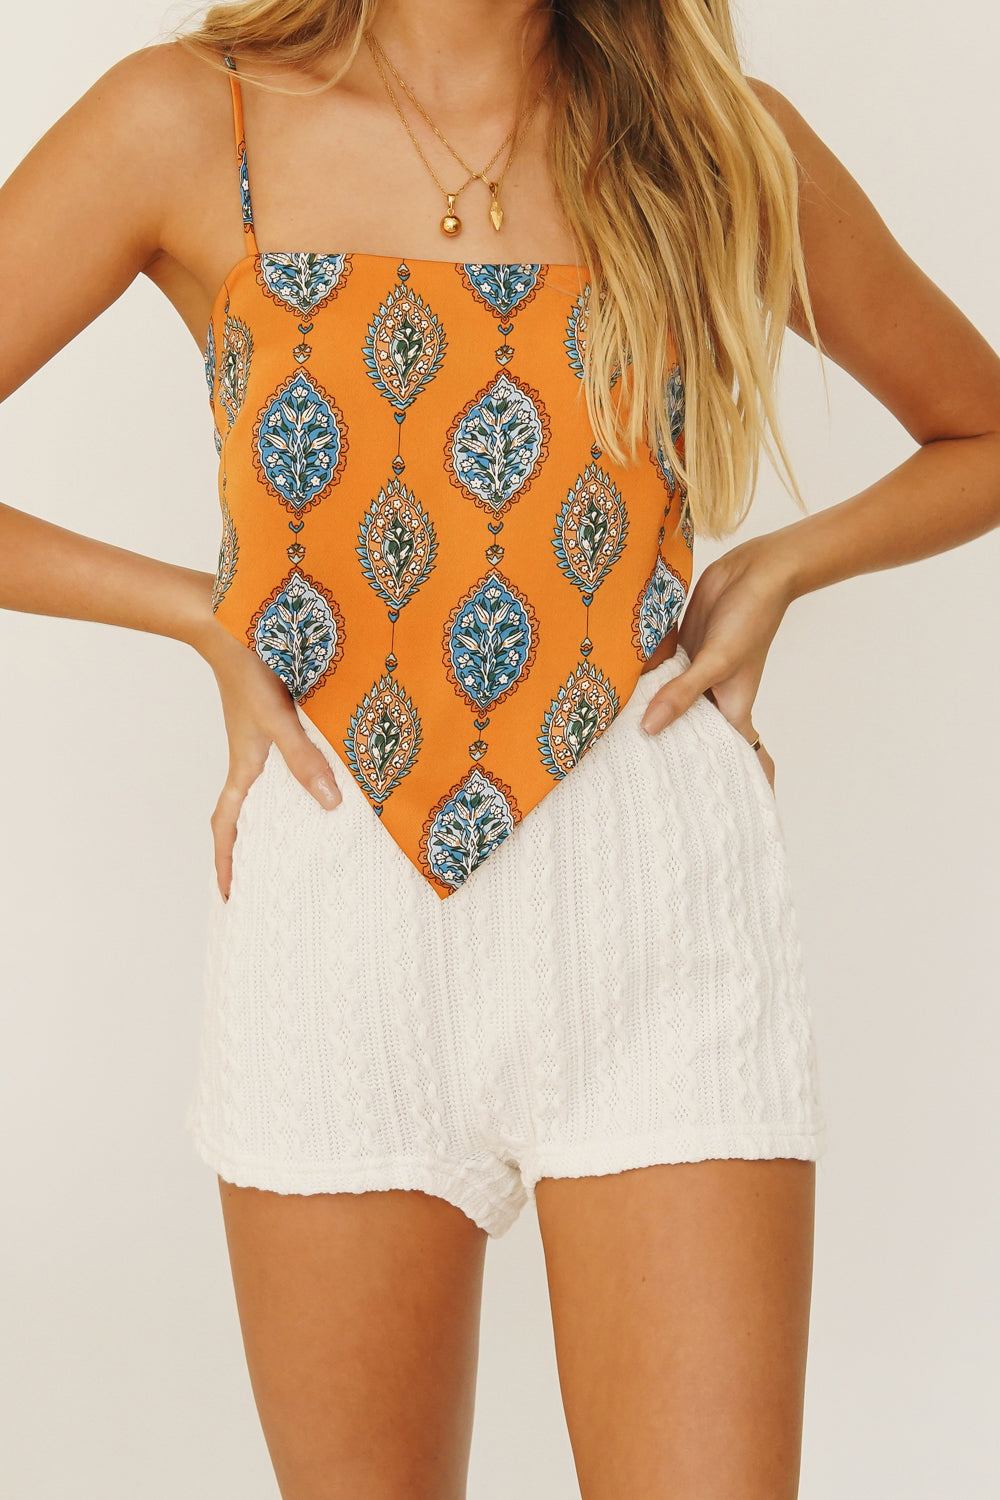 New Creative Tie Back Top // Orange